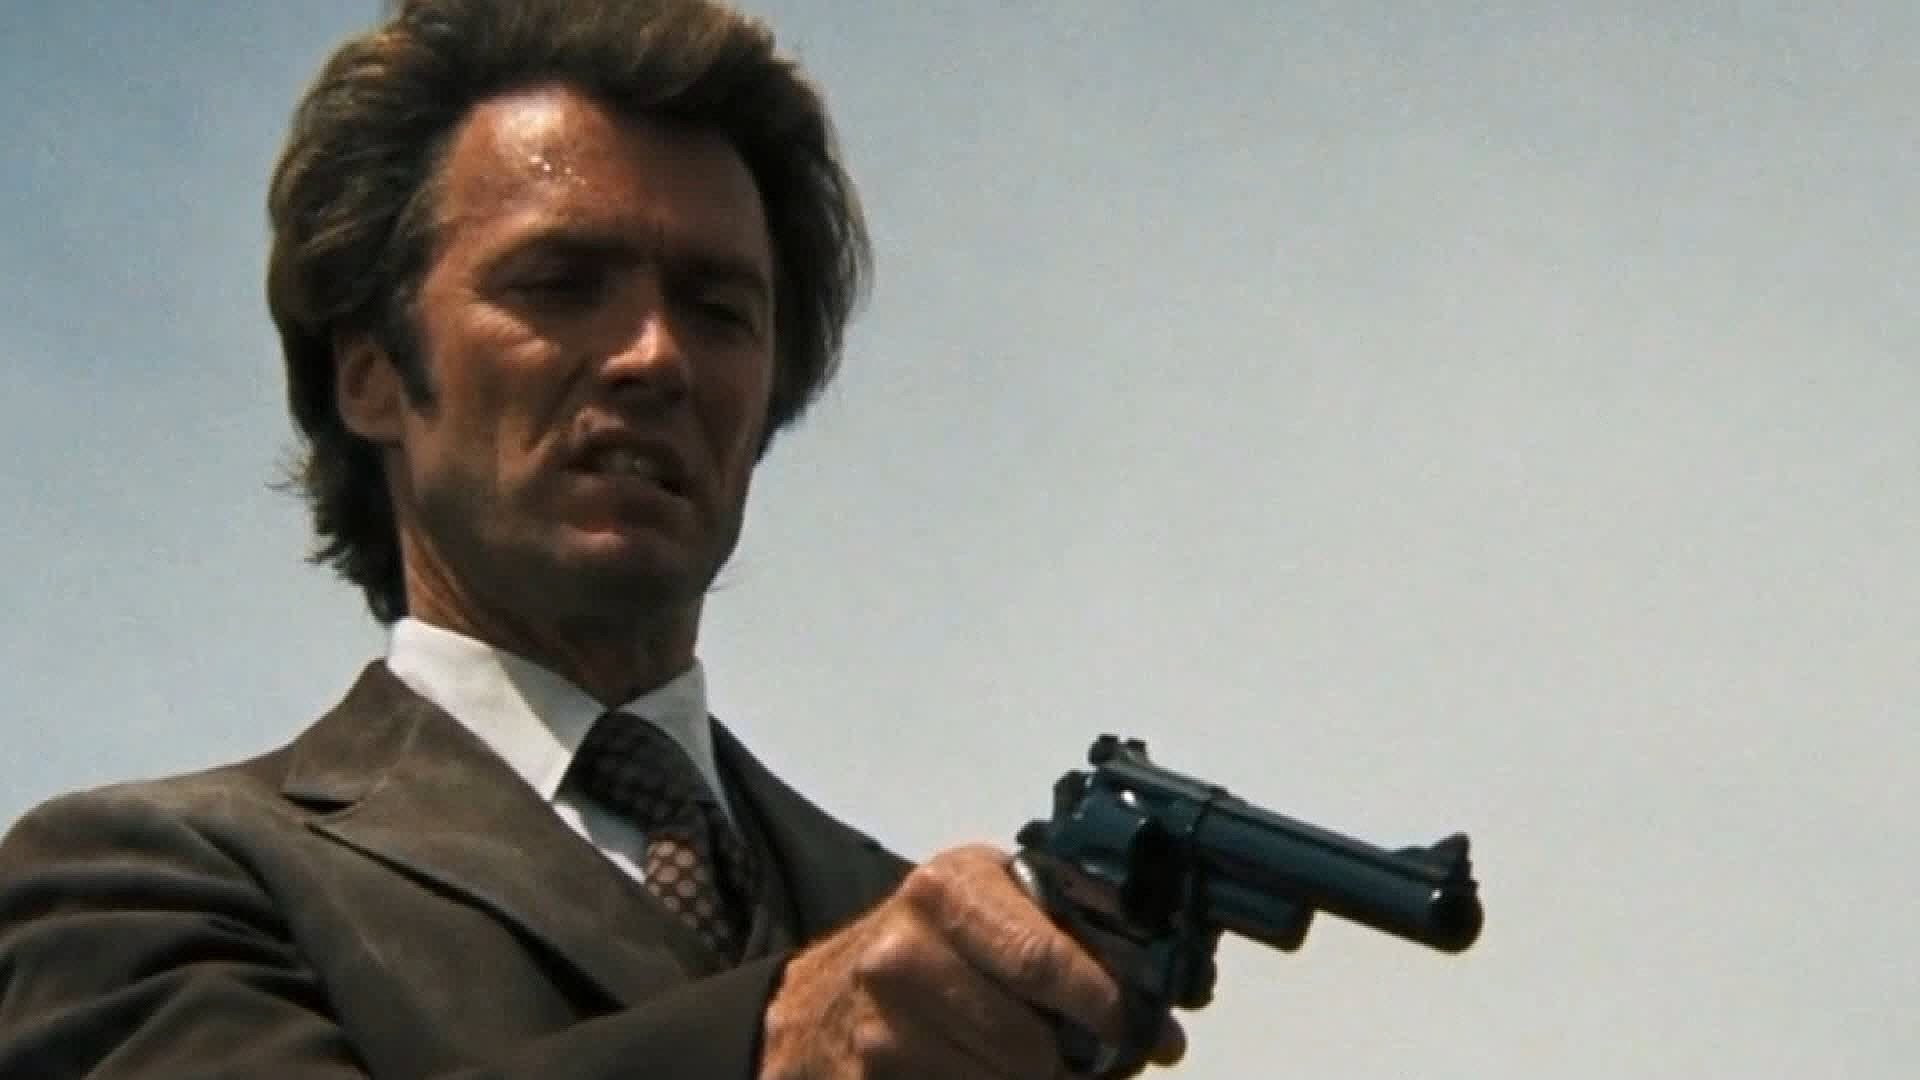 The Dirty Harry Question